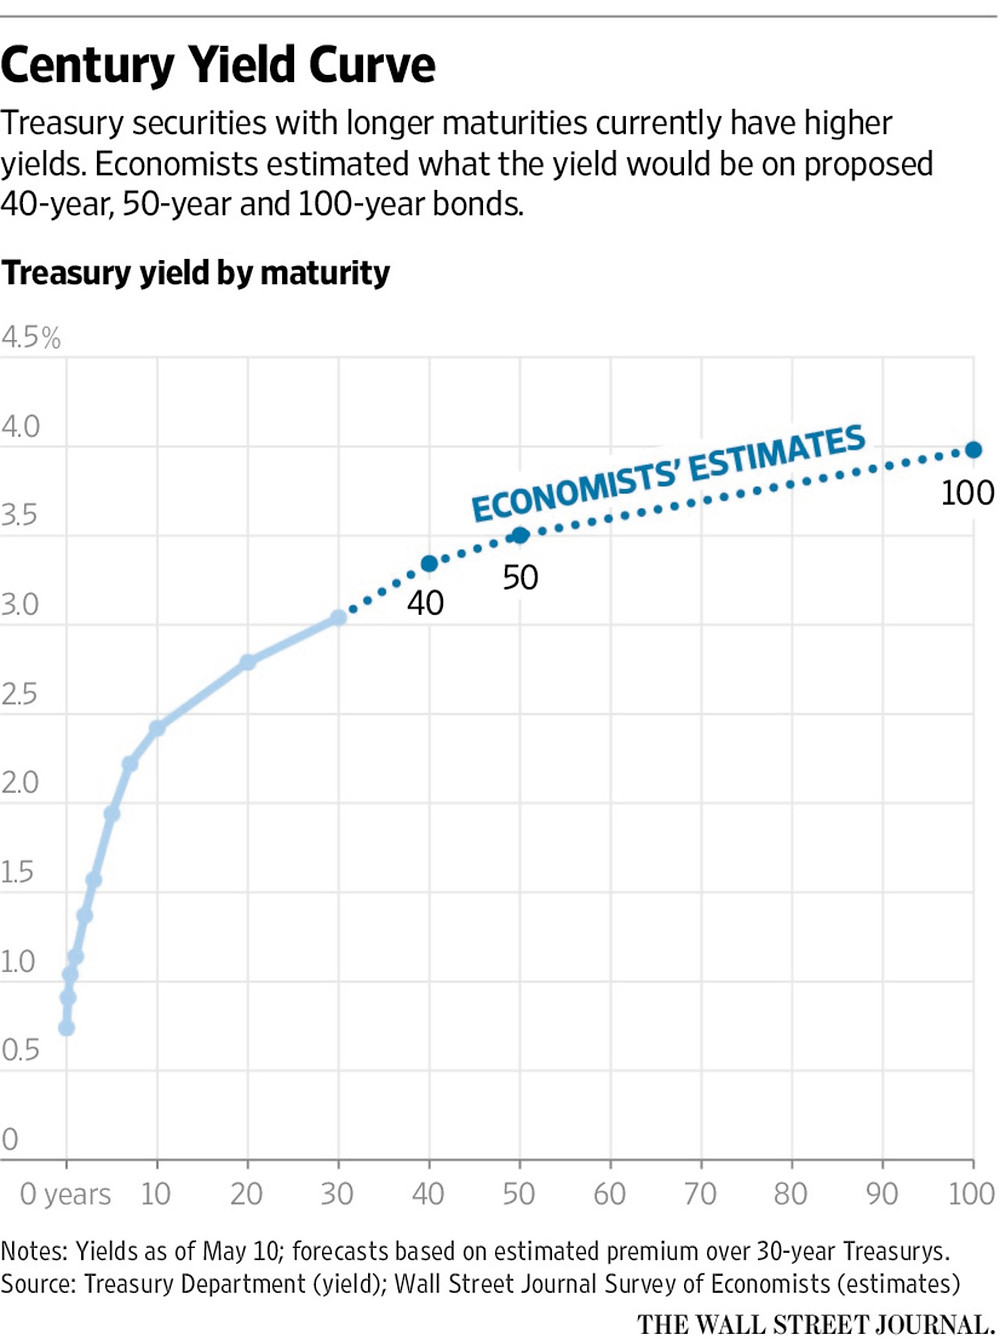 A chart showing estimated yield curves for vey long-term Treasury securities.